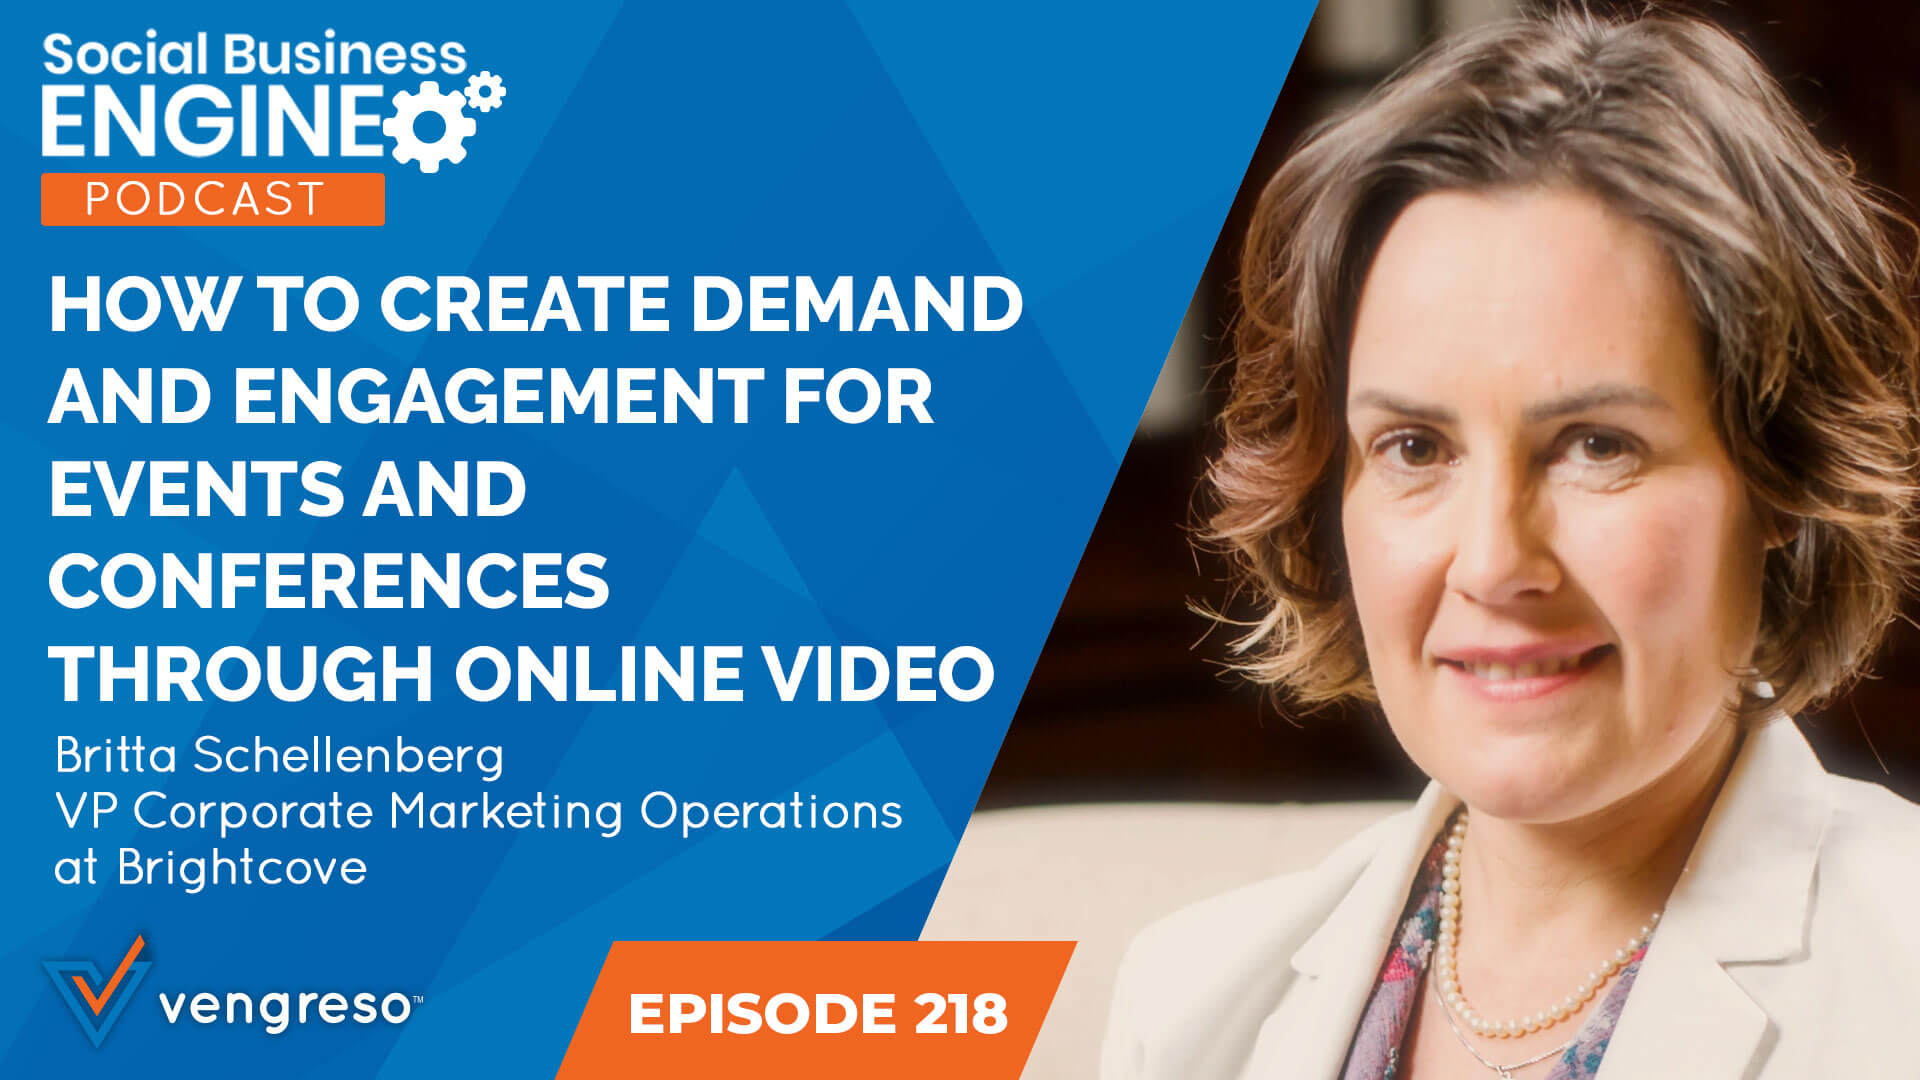 How To Create Demand And Engagement For Events And Conferences Through Online Video